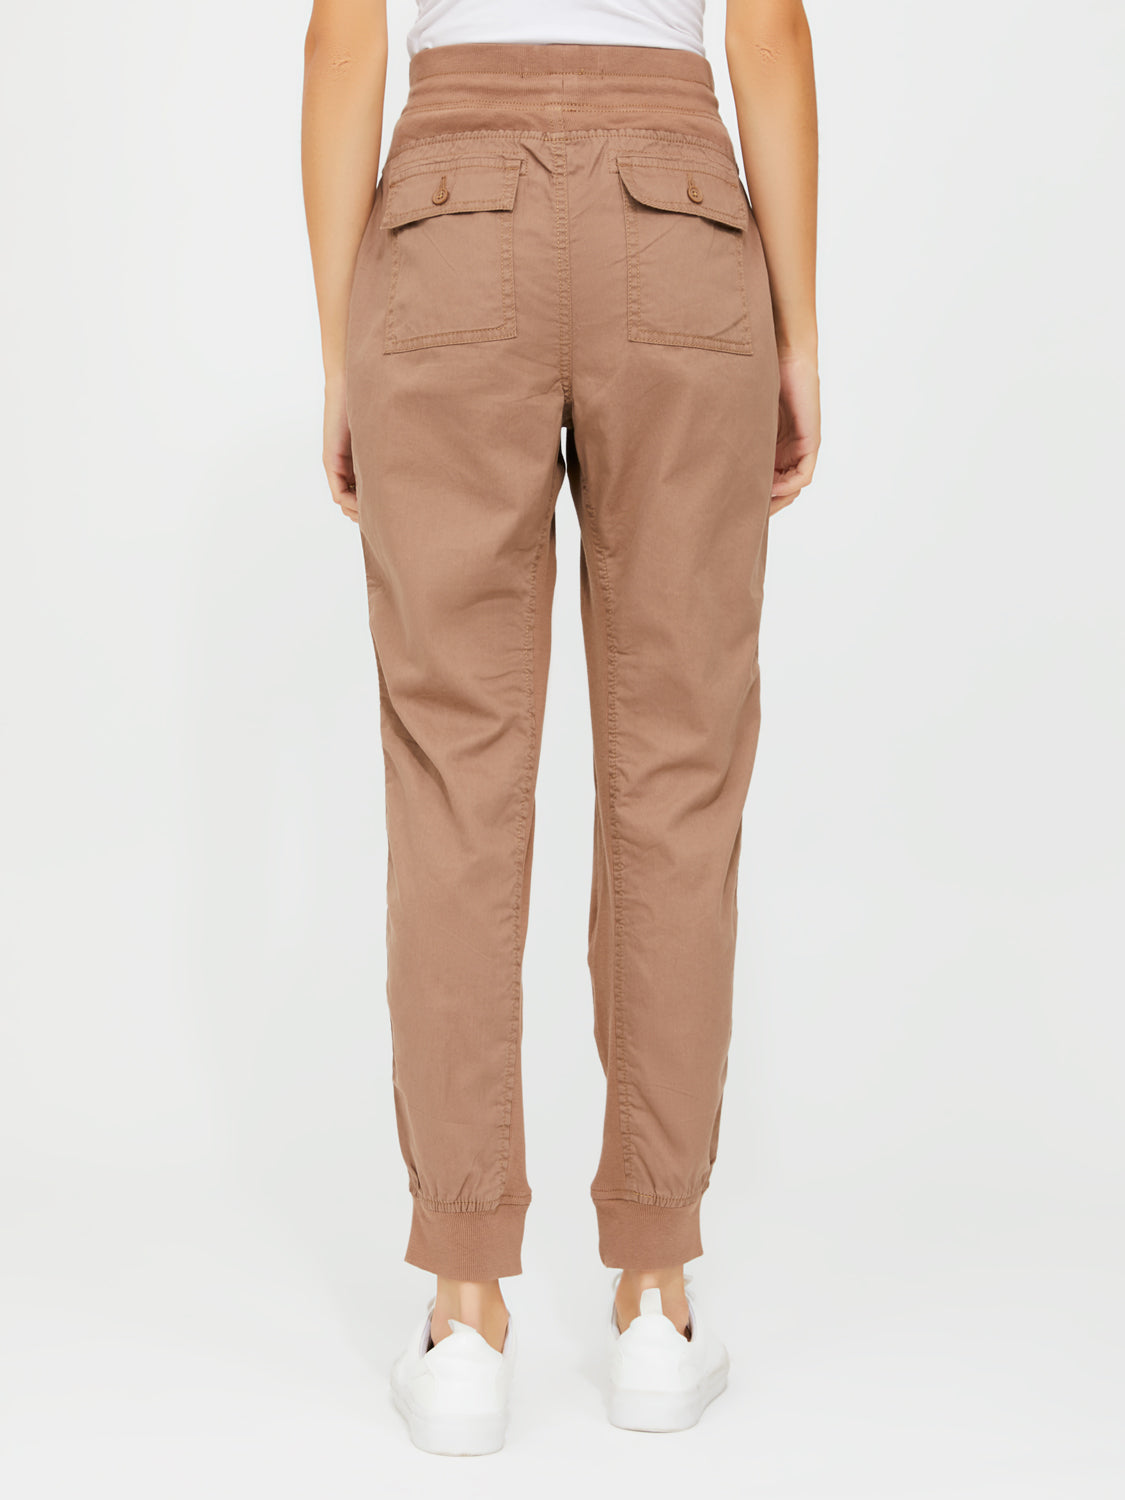 Pull-On Drop Crotch Jogger Pants